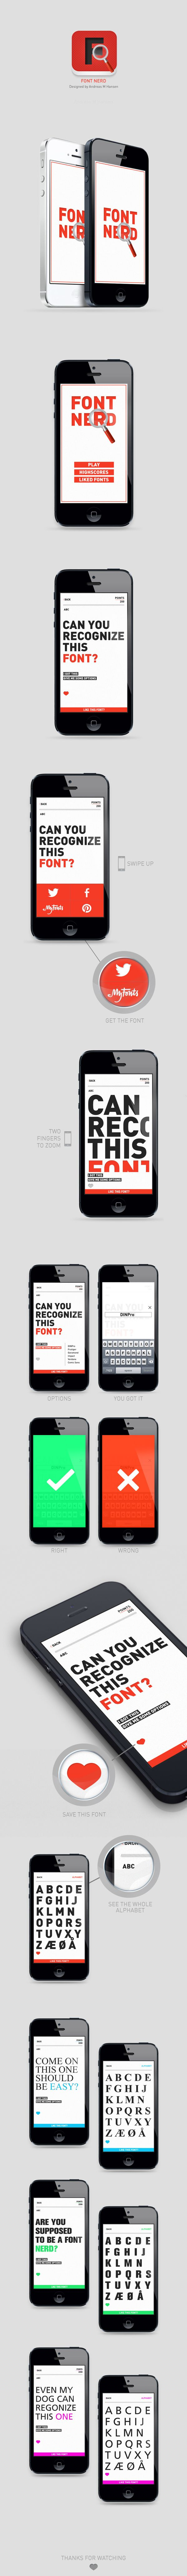 Font Nerd by Andreas M Hansen, via Behance